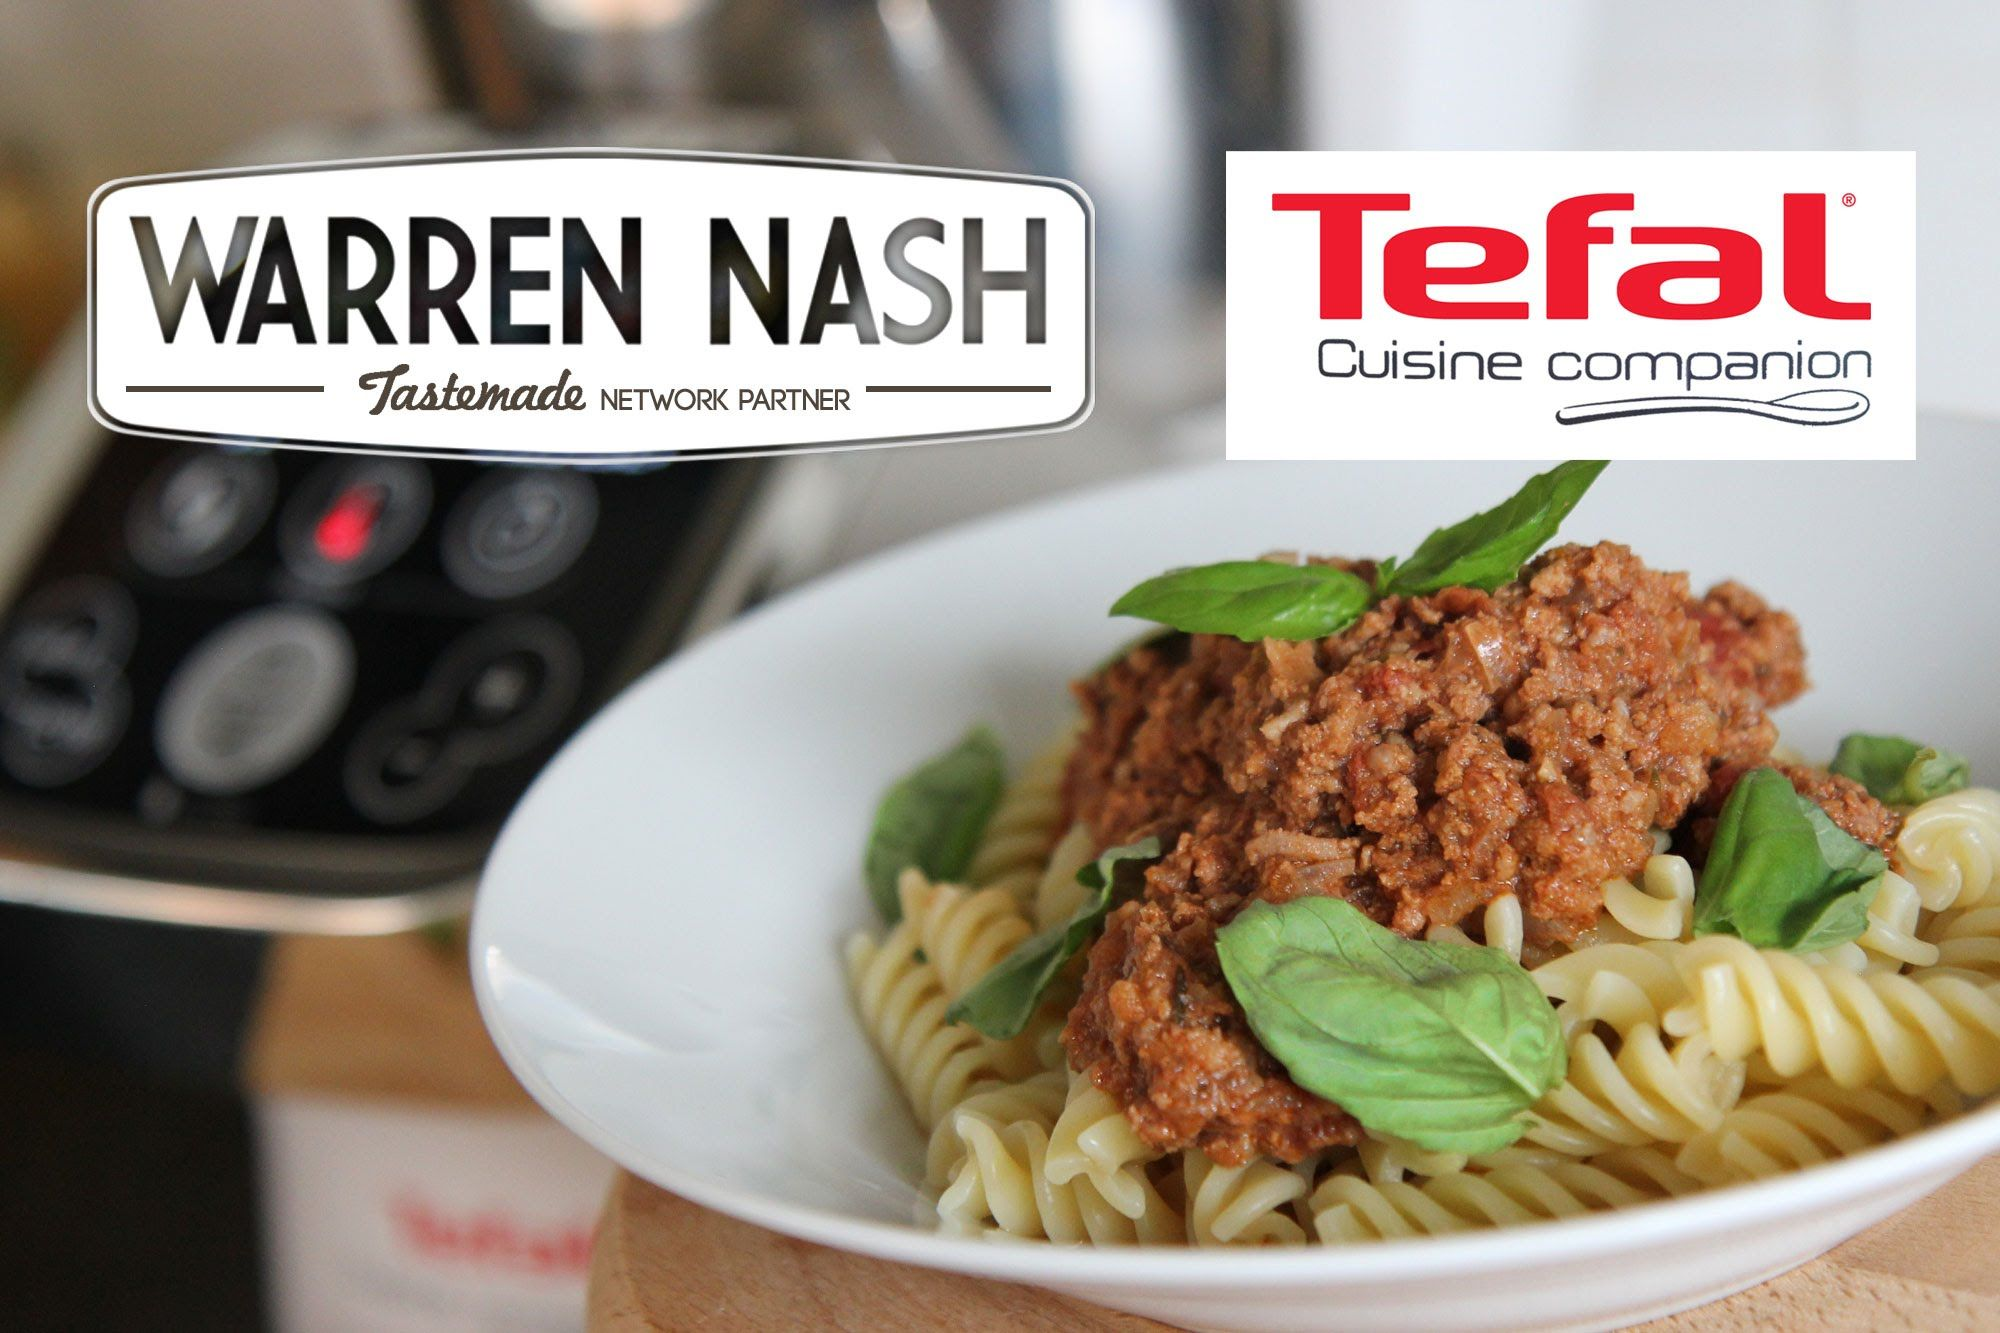 how to clean tefal cuisine companion bowl